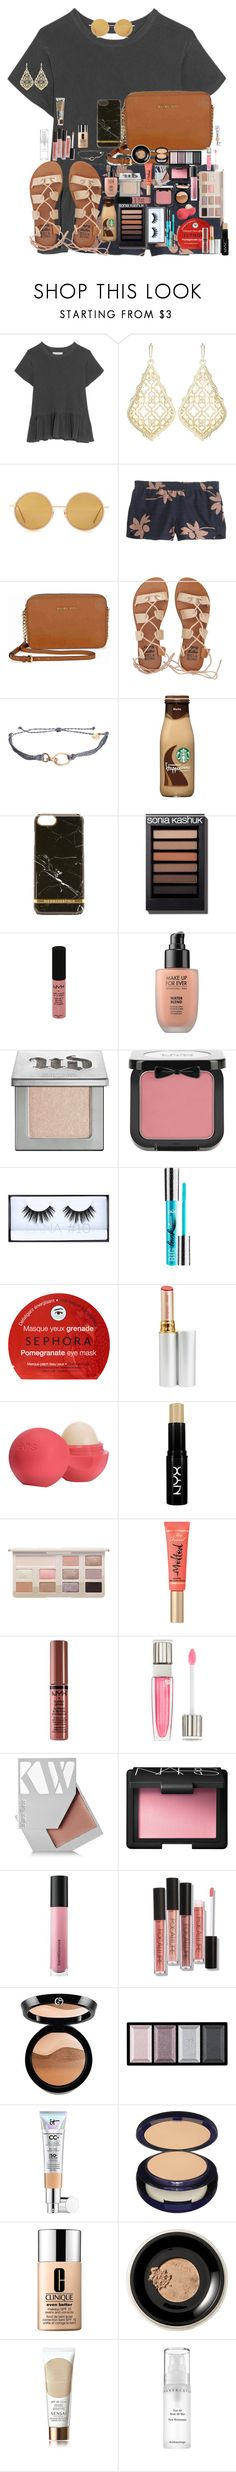 """""""To much"""" by erinlarson0226 ❤ liked on Polyvore featuring The Great, Kendra Scott, Acne Studios, J.Crew, Michael Kors, Billabong, Pura Vida, Richmond & Finch, NYX and MAKE UP FOR EVER"""